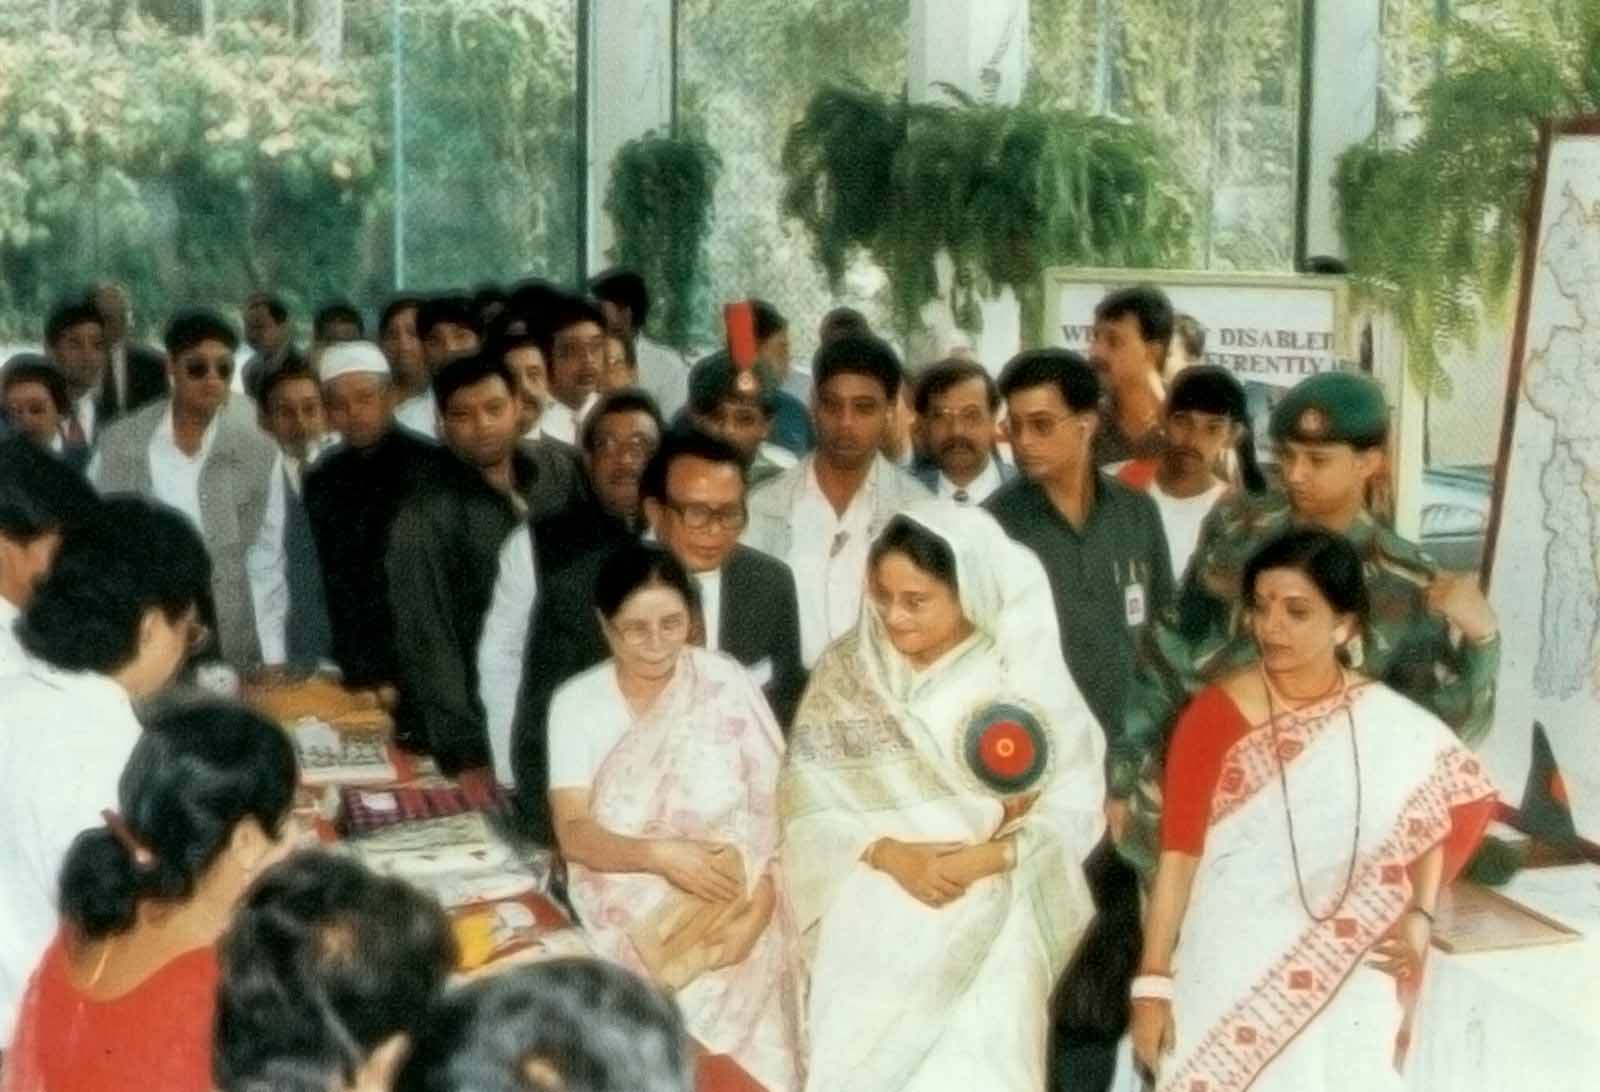 Prime Minister Sheikh Hasina visiting stalls at the 13th ACMR Bangladesh, 1997